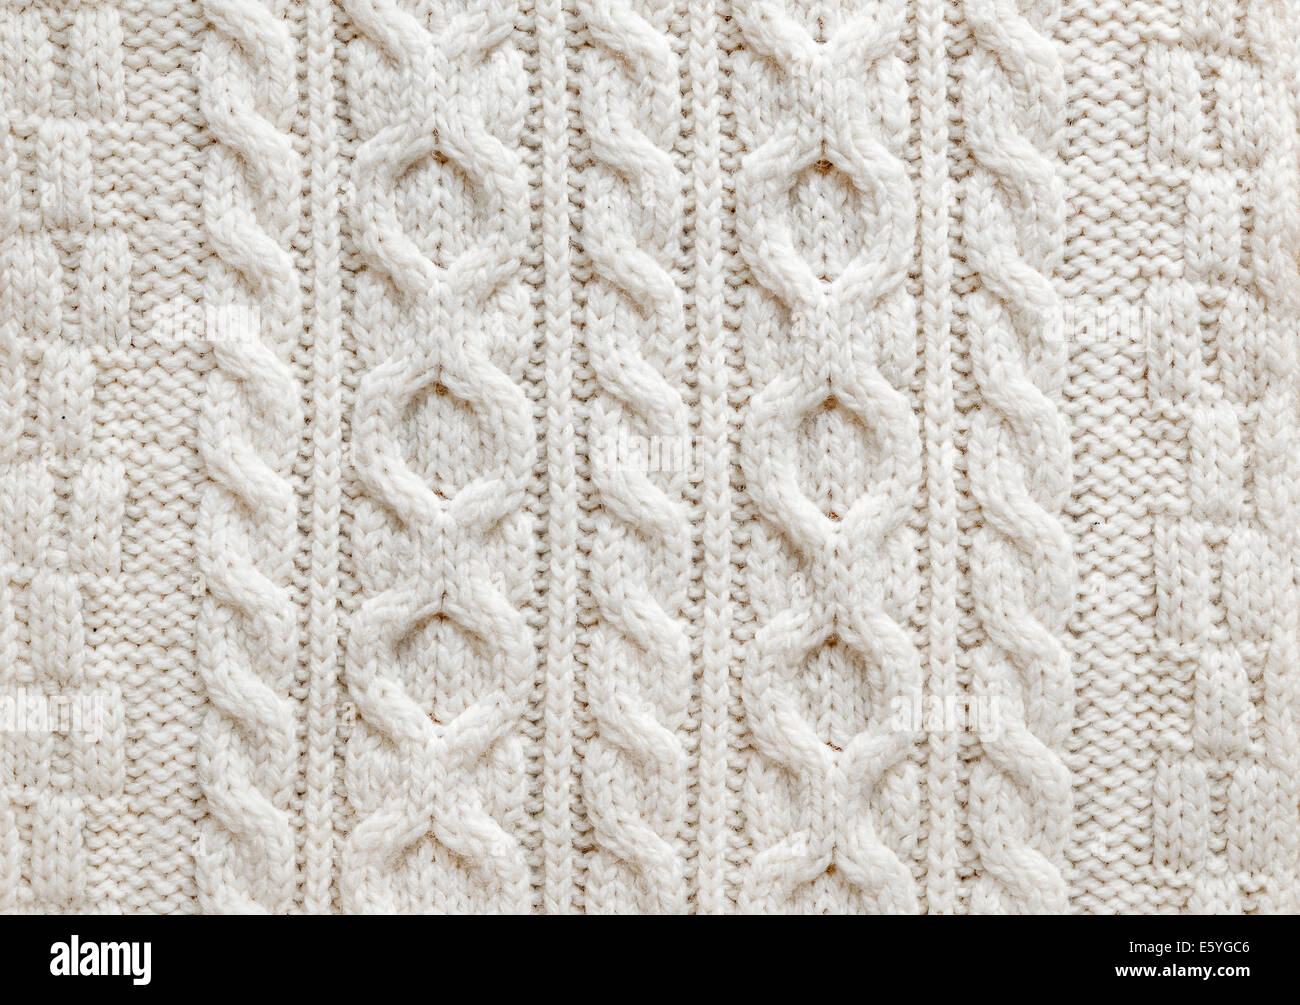 Wool Knitting Patterns : Knit texture of light natural wool knitted fabric with cable pattern Stock Ph...